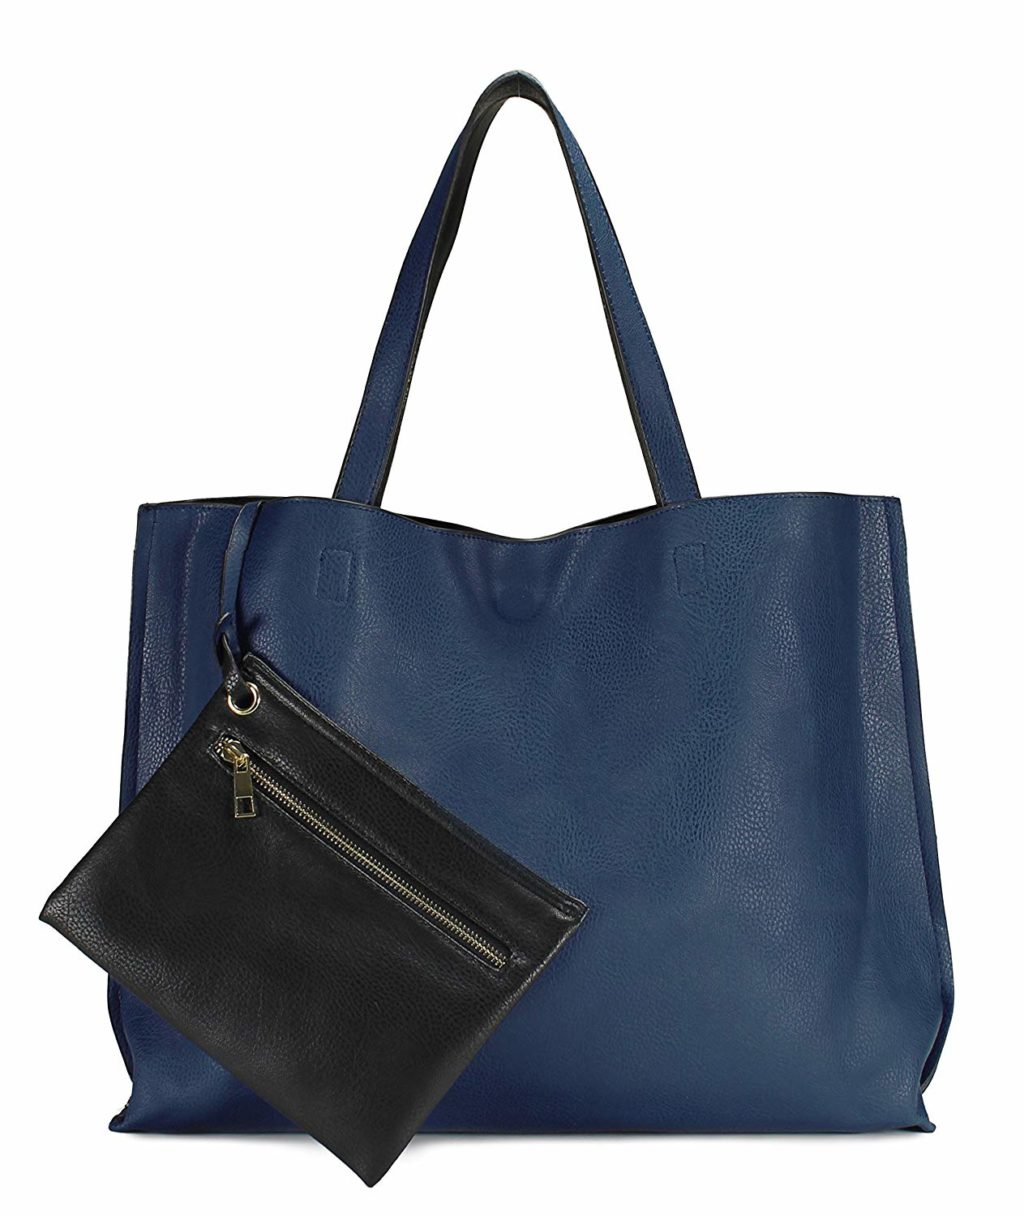 Scarleton Style Reversible Tote: The Ultimate List of the Best Vegan Travel Bags